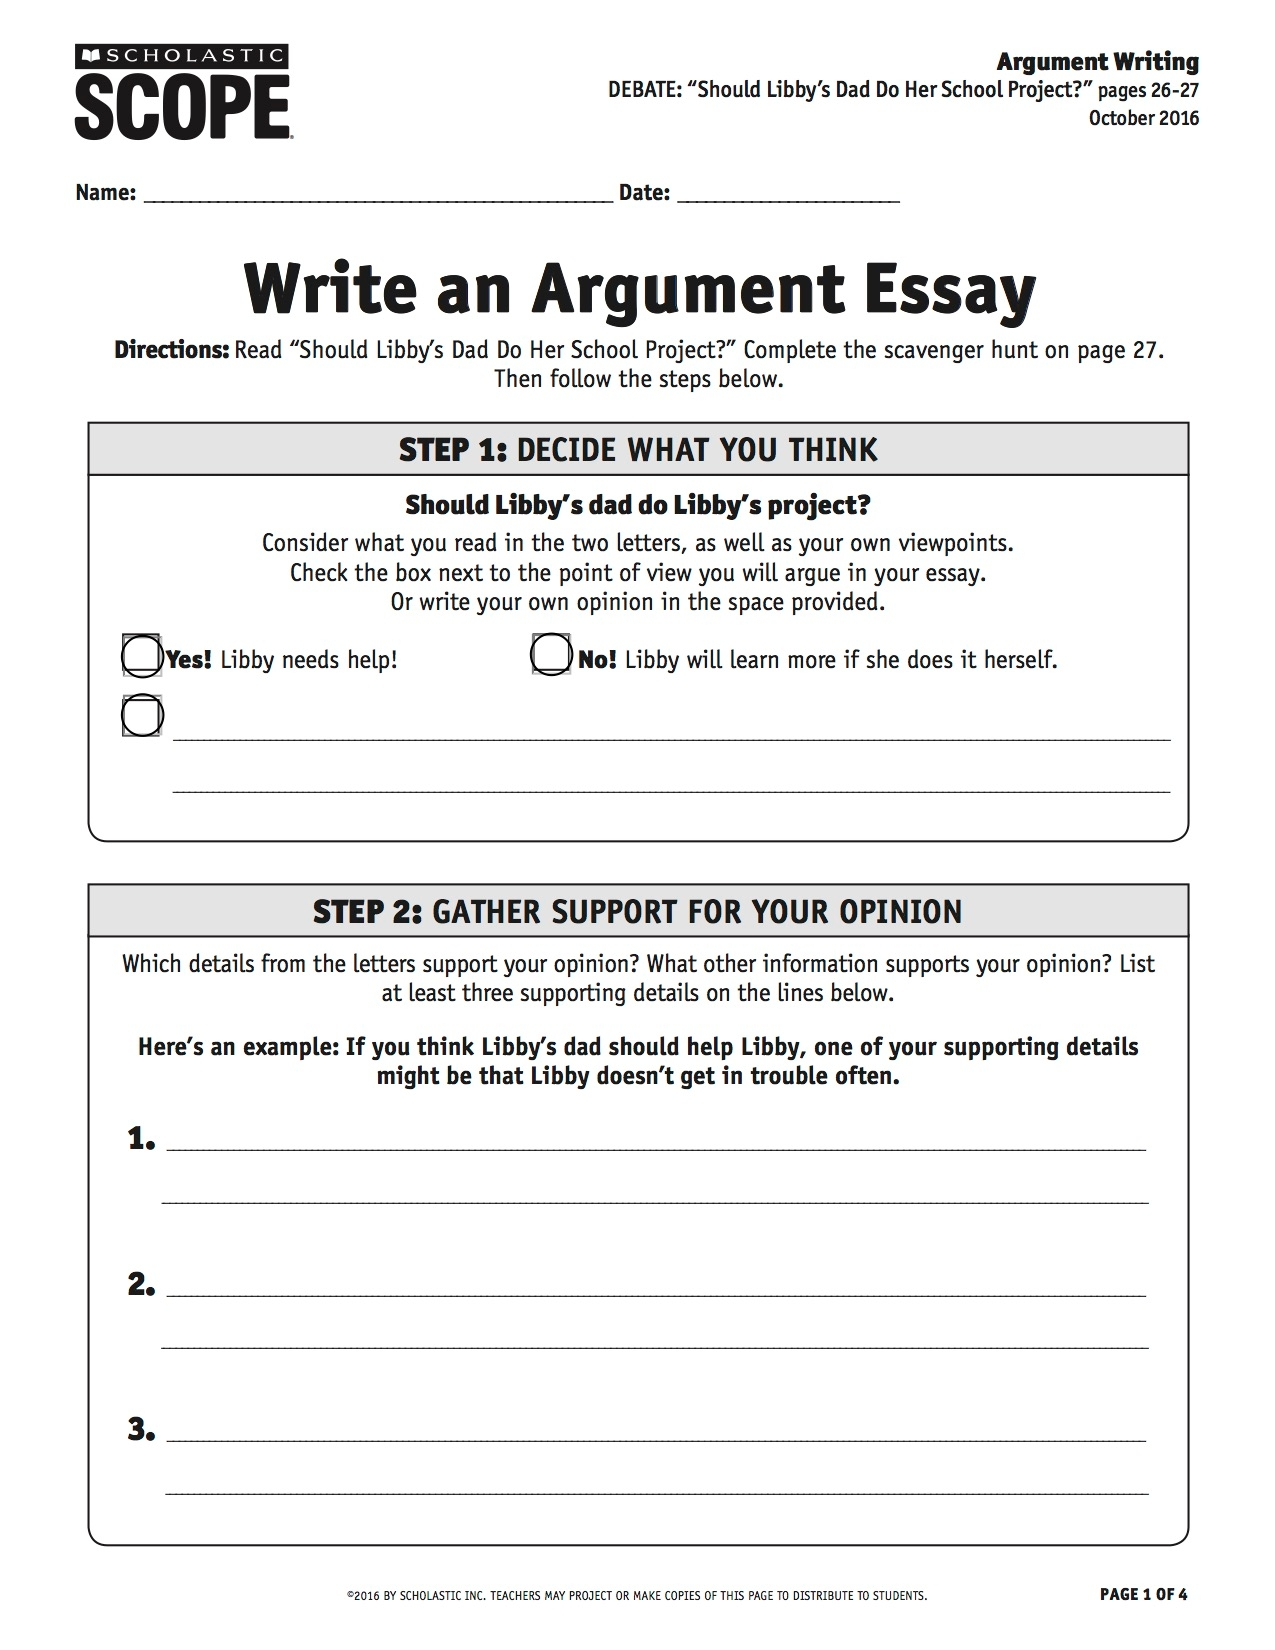 writing a debate essay